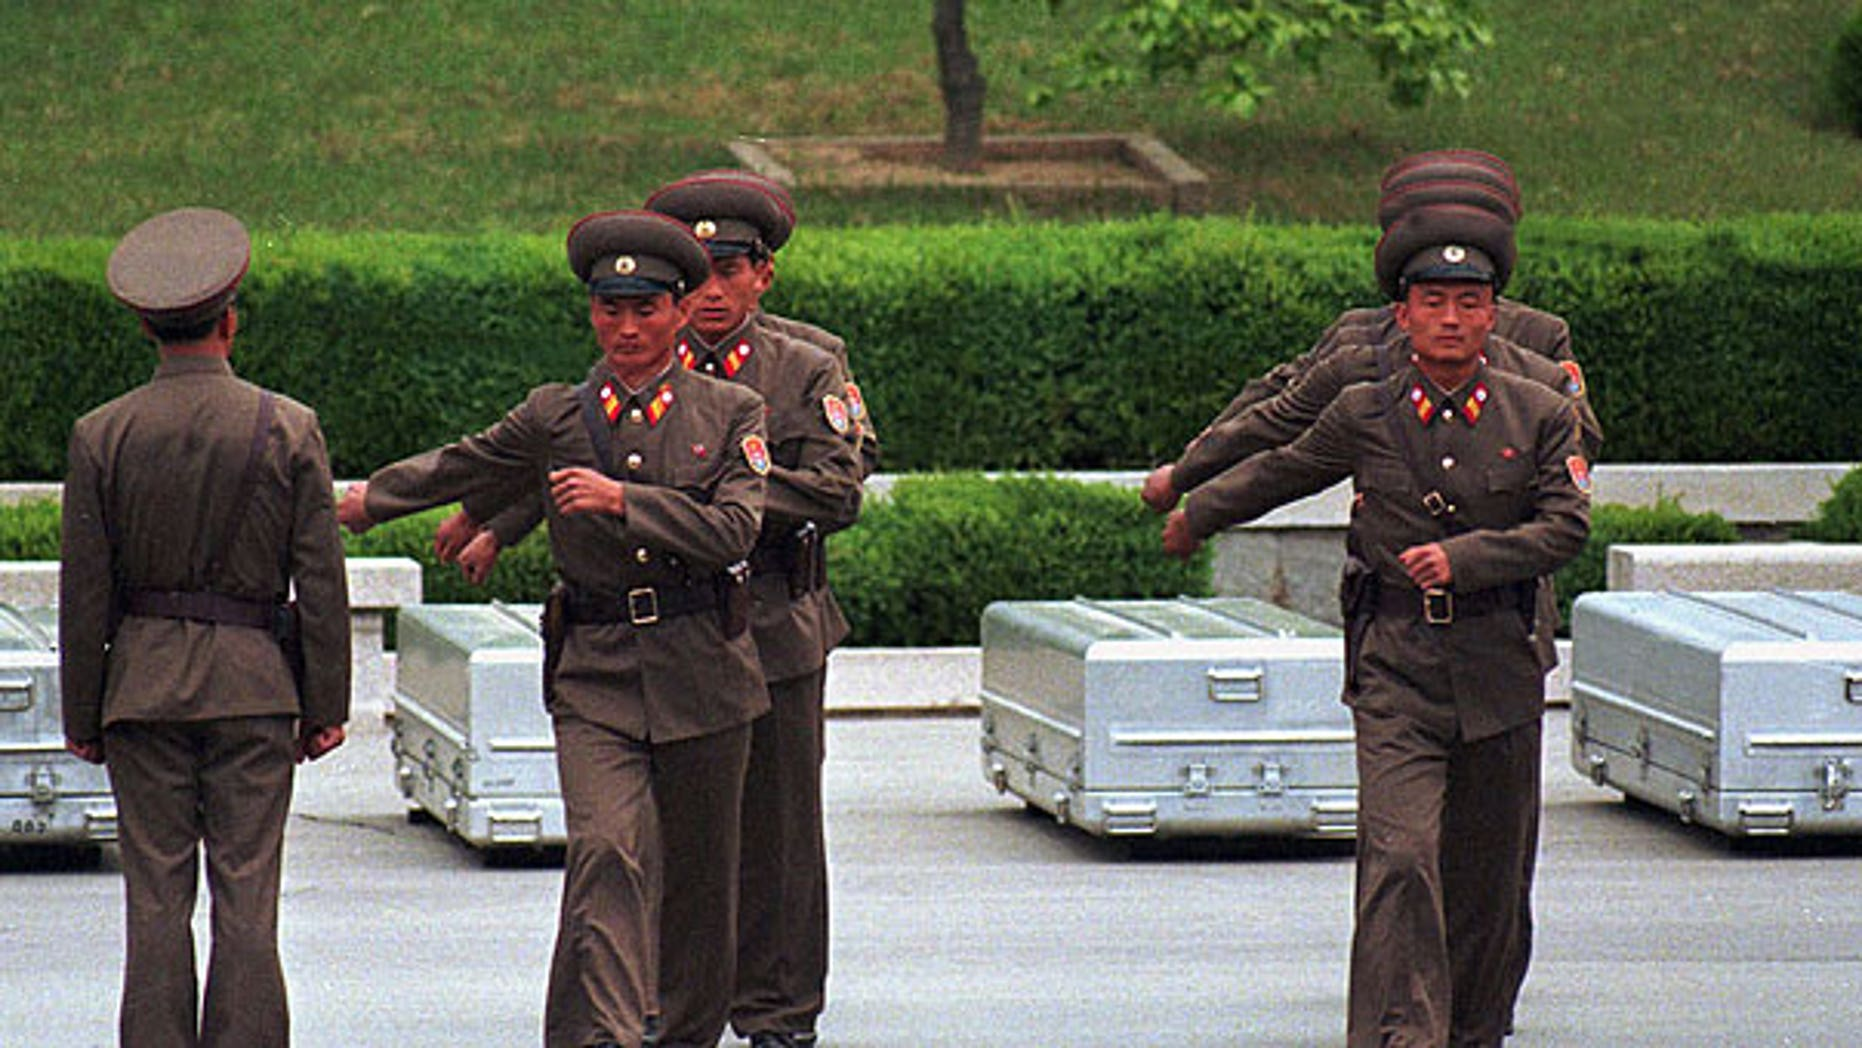 In this May 14, 1999 file photo, North Korean soldiers march away from coffins containing the remains of the American soldiers during a ceremony at the border village of Panmunjom, north of Seoul, South Korea. North Korea said Friday, Aug. 19, 2011, it has accepted a U.S. proposal to hold talks on finding the remains of American soldiers buried in the North.